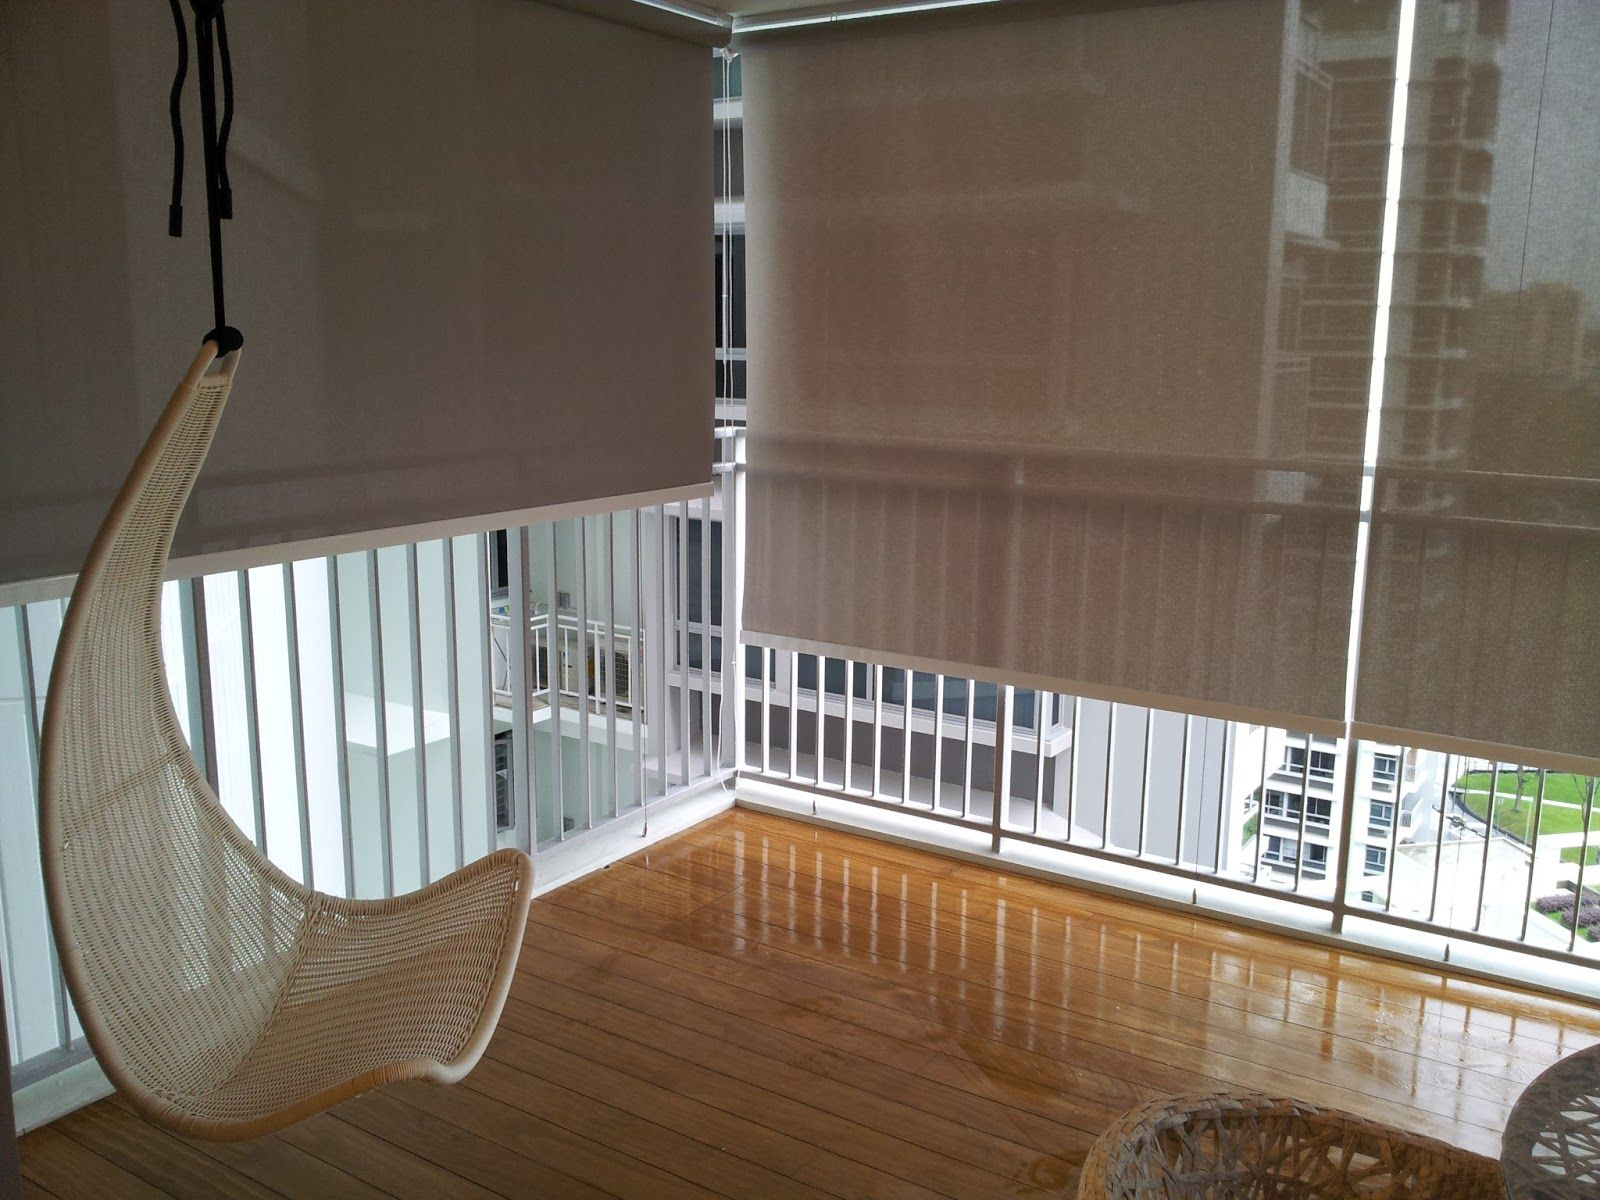 Balcony Rain Curtains Balcony Pinterest Balconies